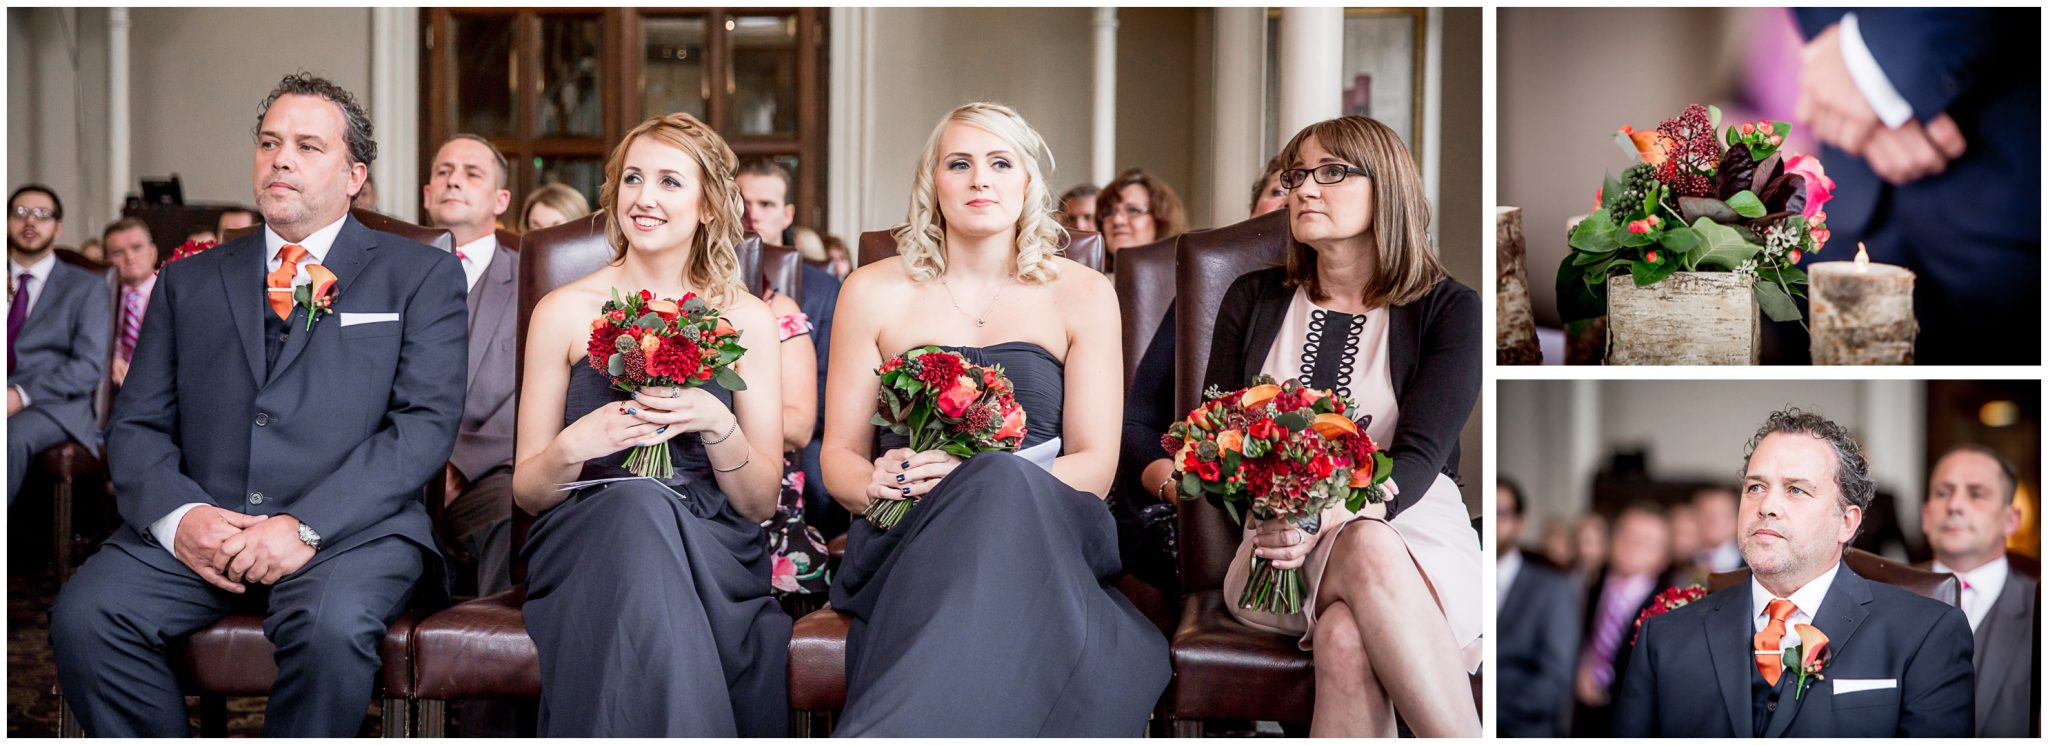 Audleys Wood wedding photograhy wedding party takes their seats